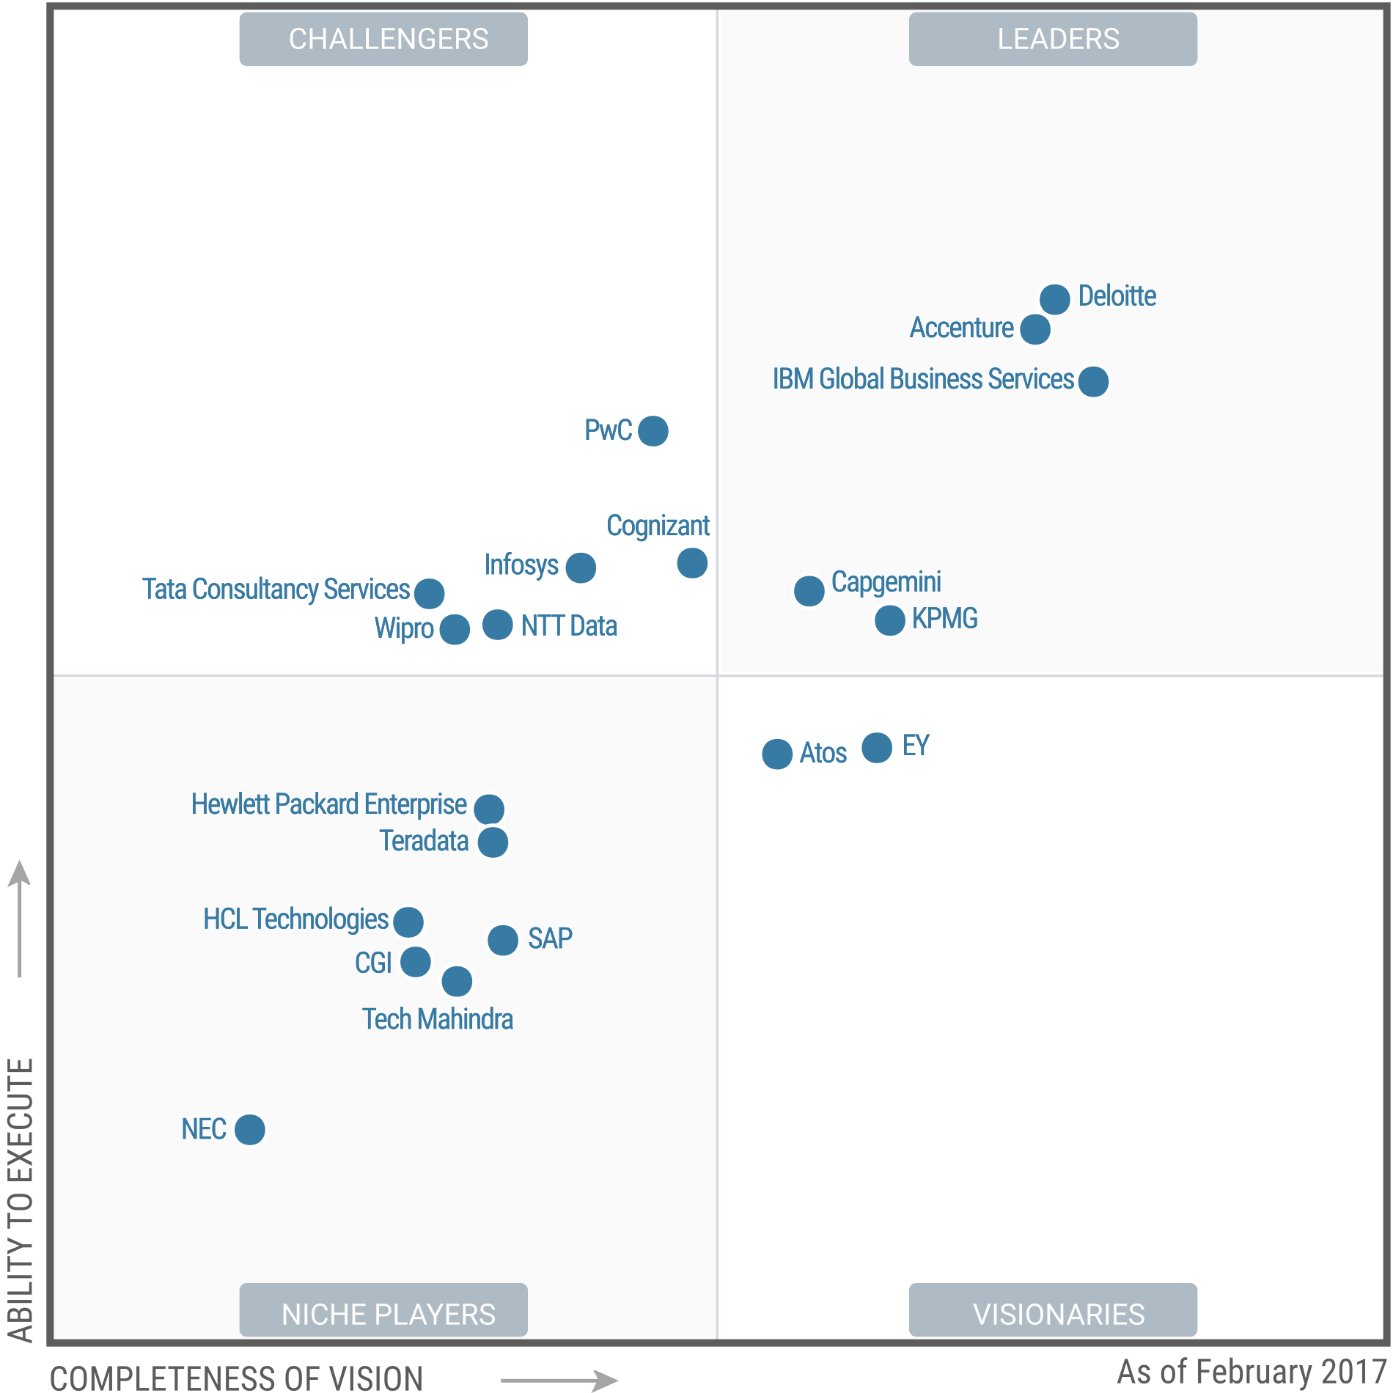 Magic Quadrant for Business Analytics Services 2017 (G00292514)